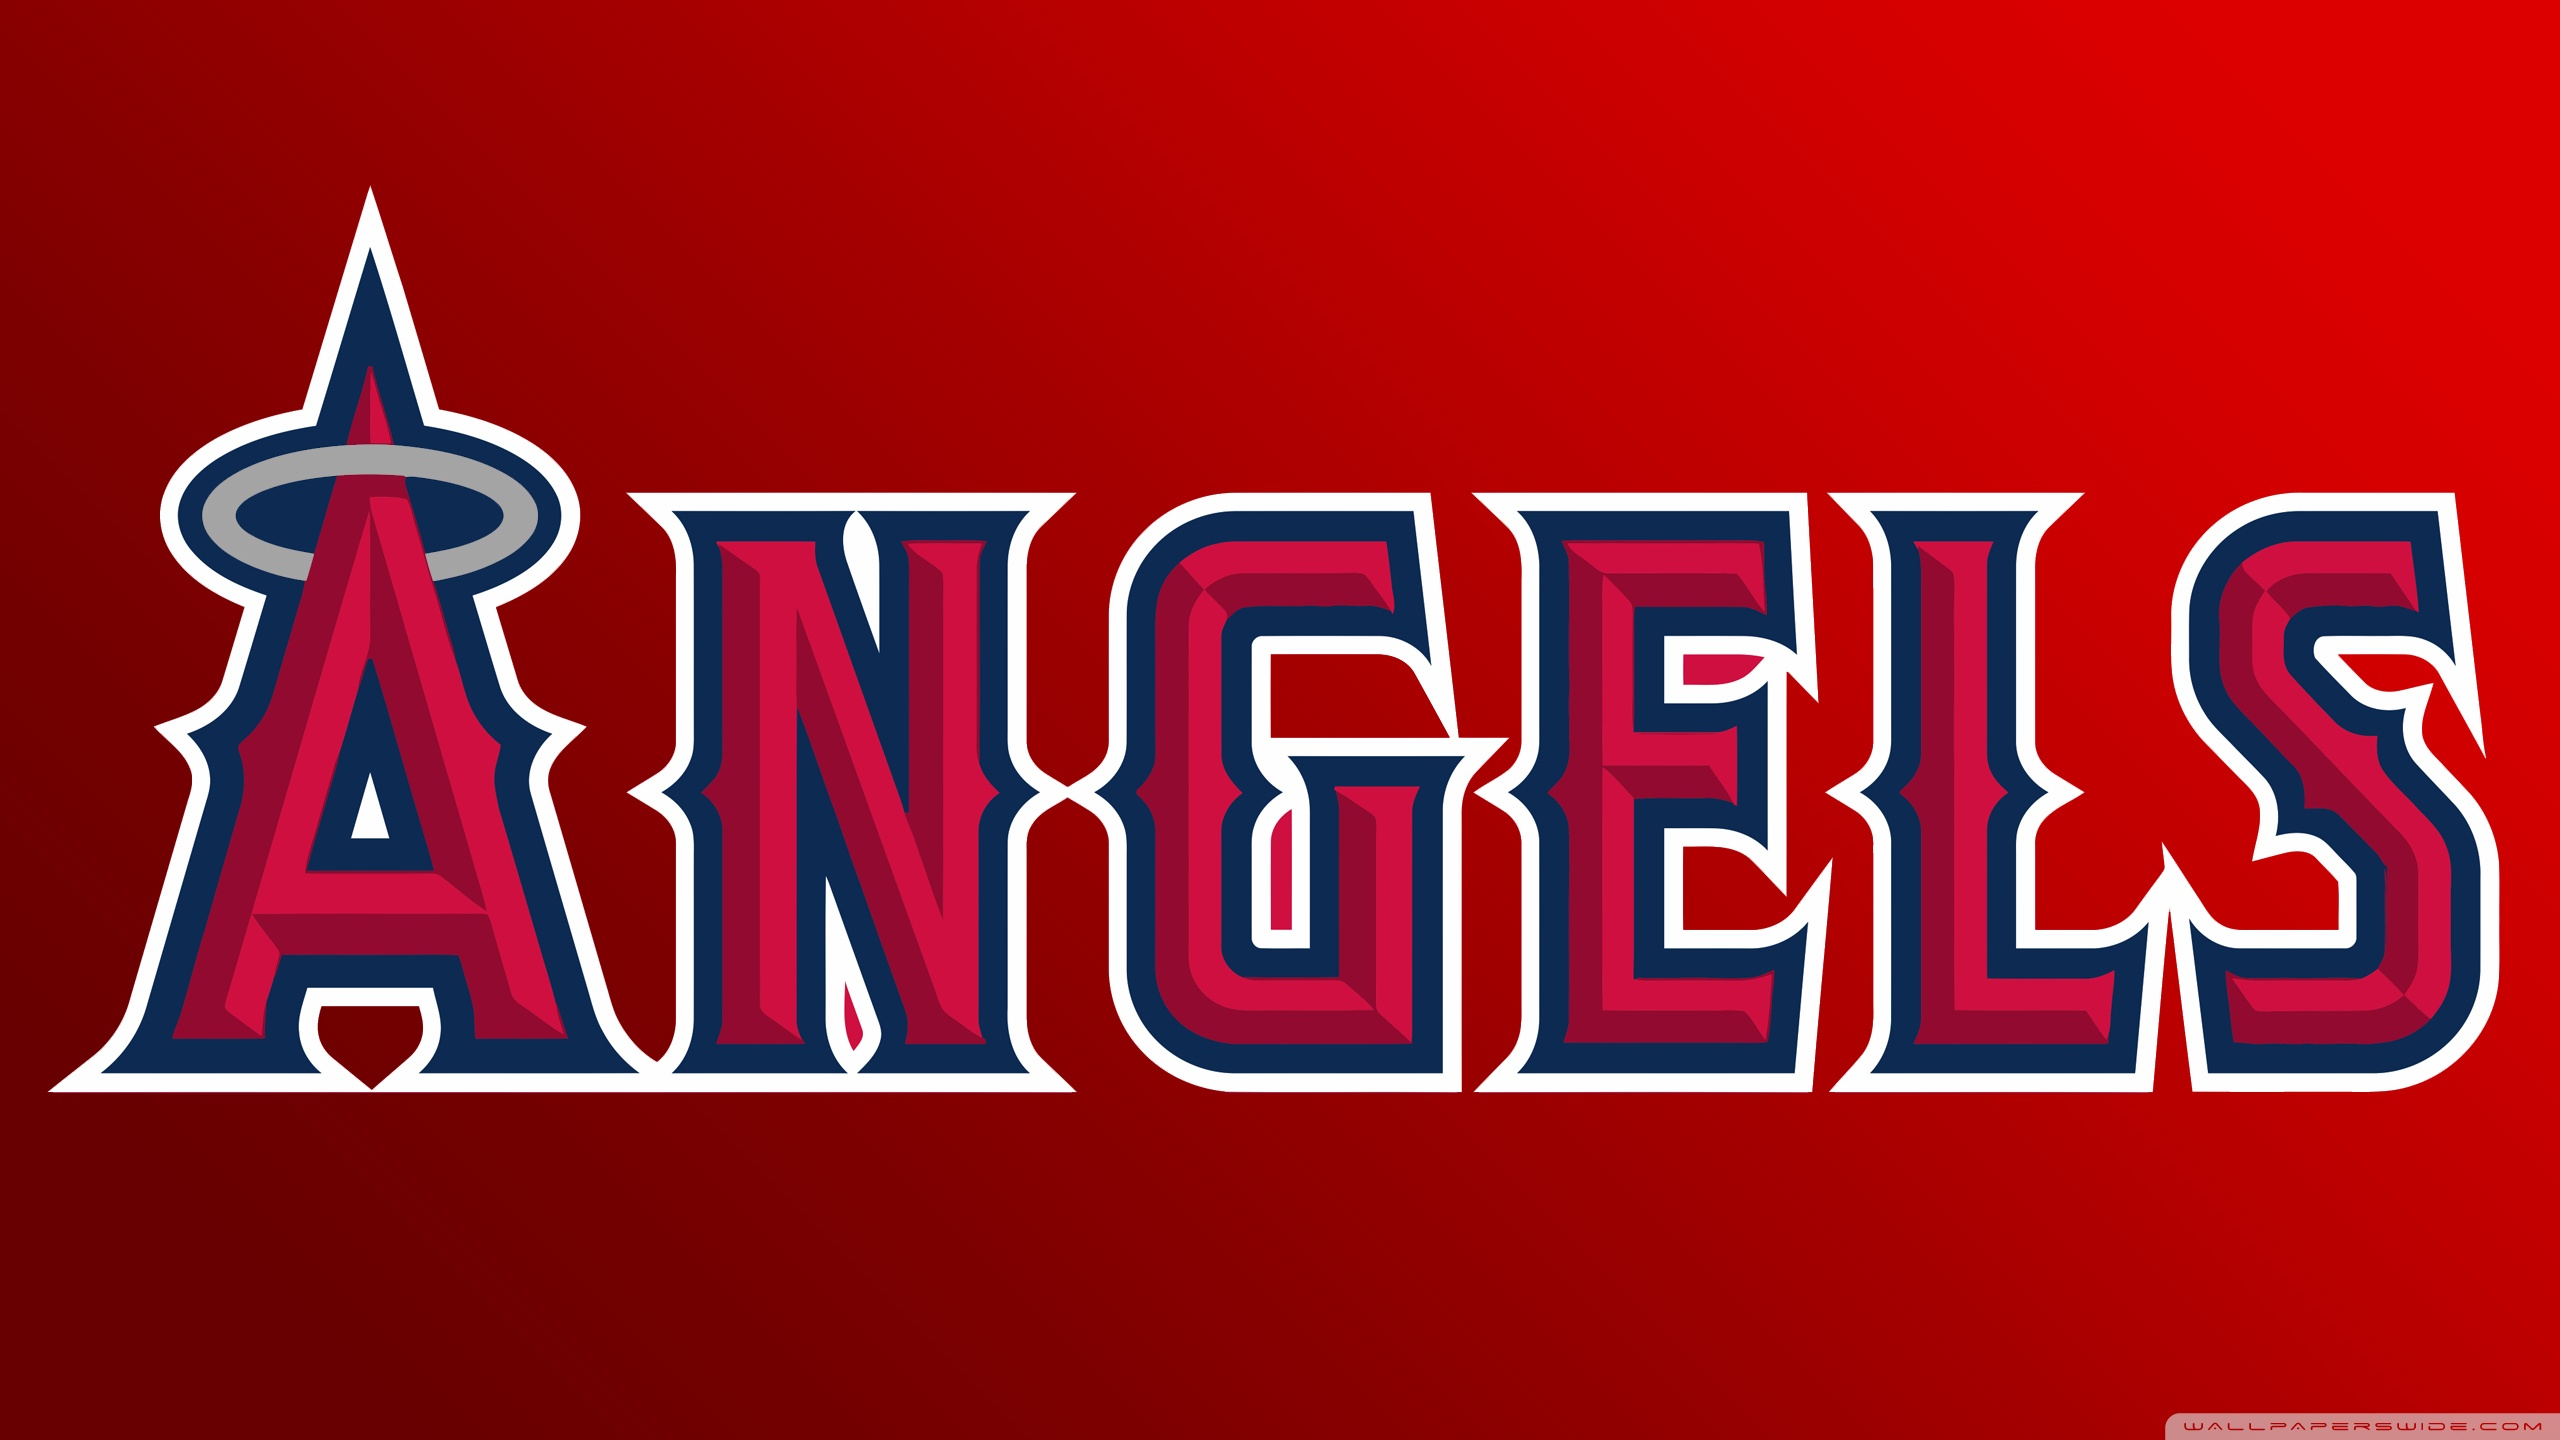 2560x1440 - Los Angeles Angels of Anaheim Wallpapers 17